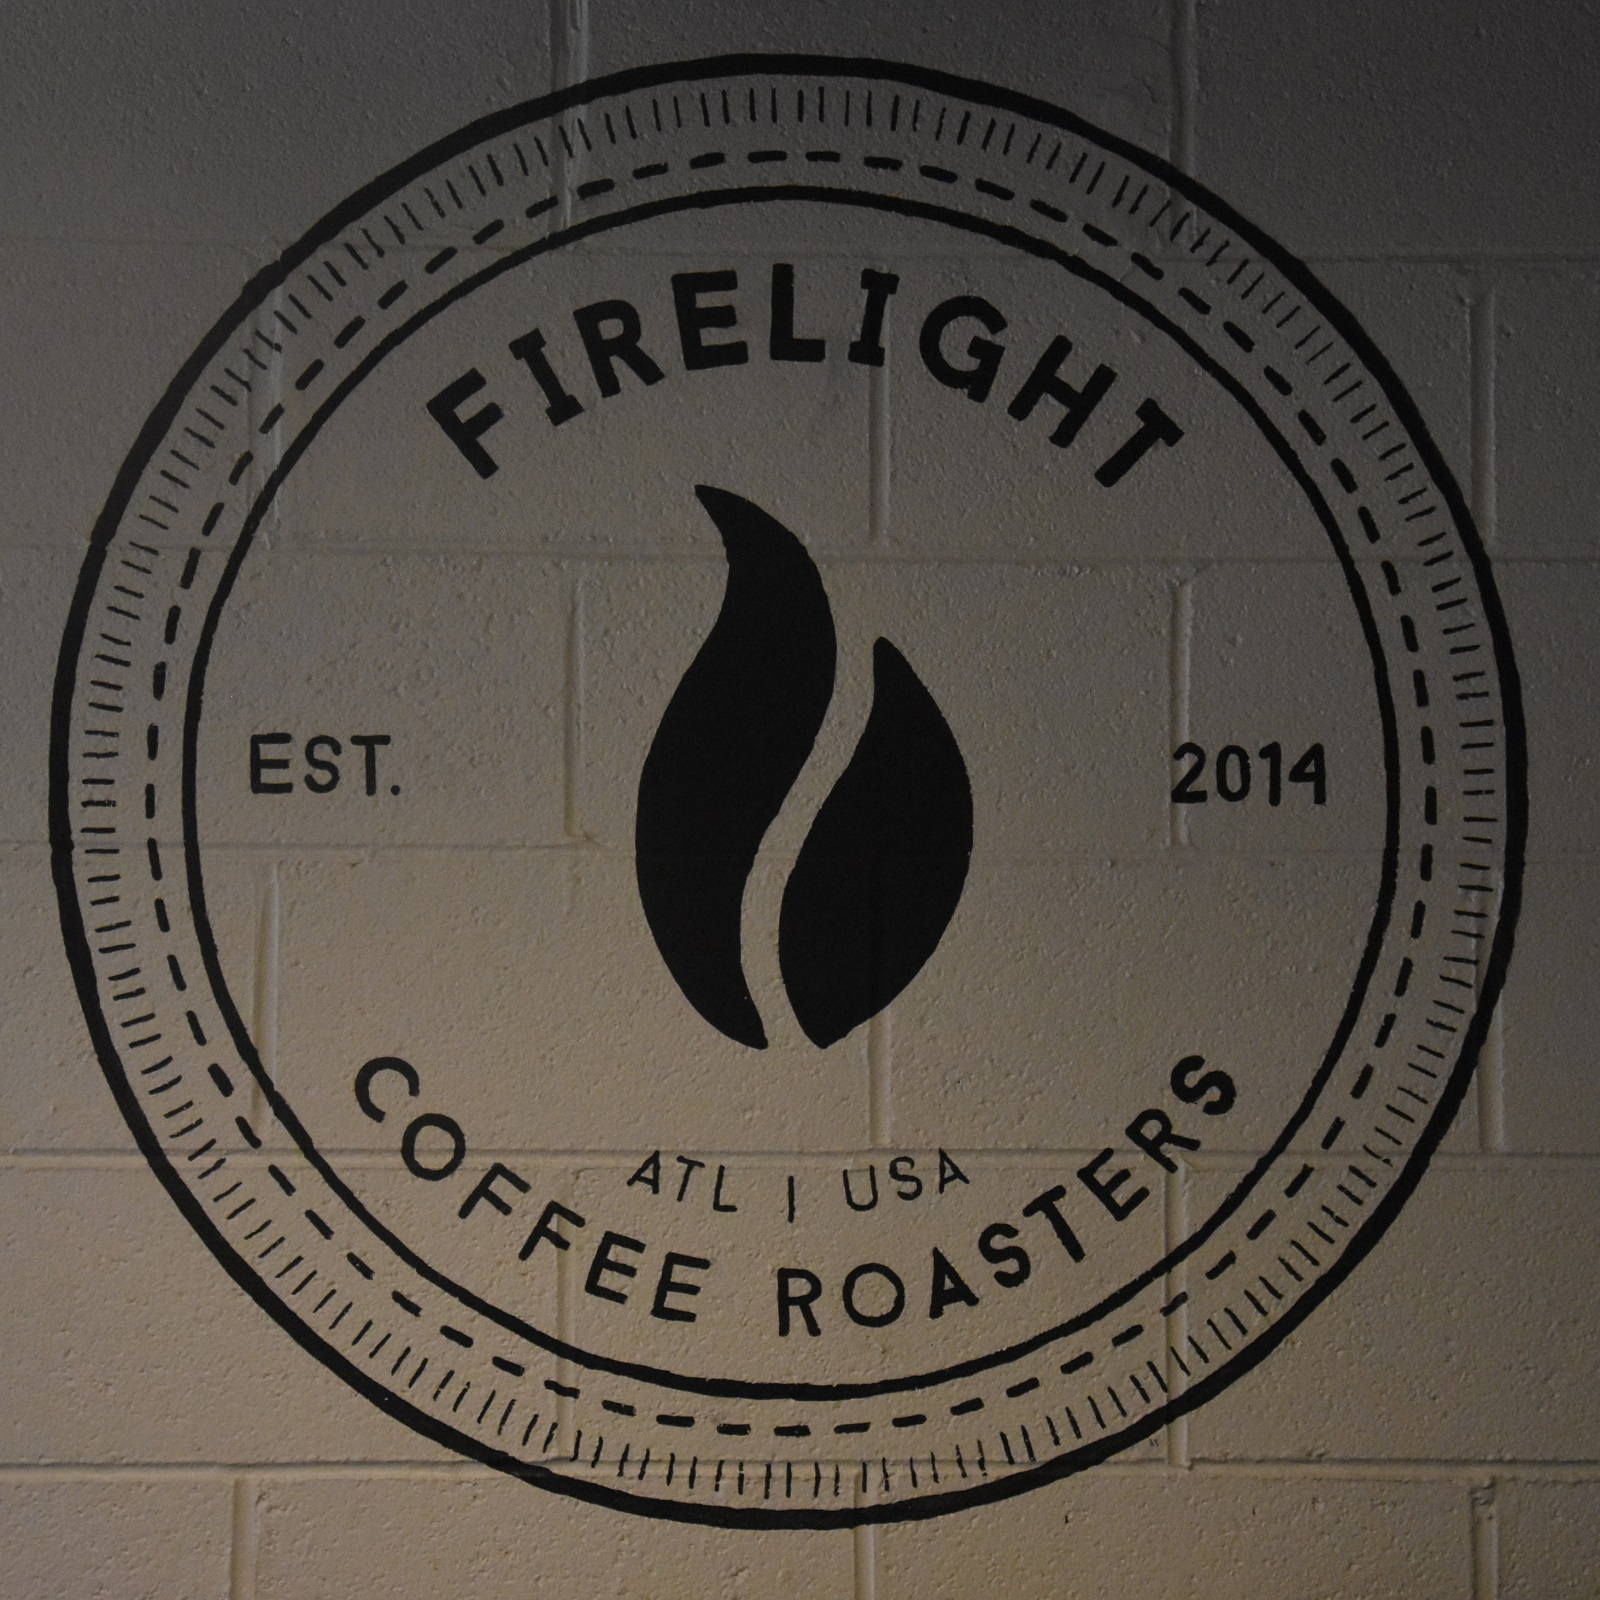 The Firelight Coffee Roasters logo from the back wall of the coffee shop/roastery in Strongbox West, Atlanta.